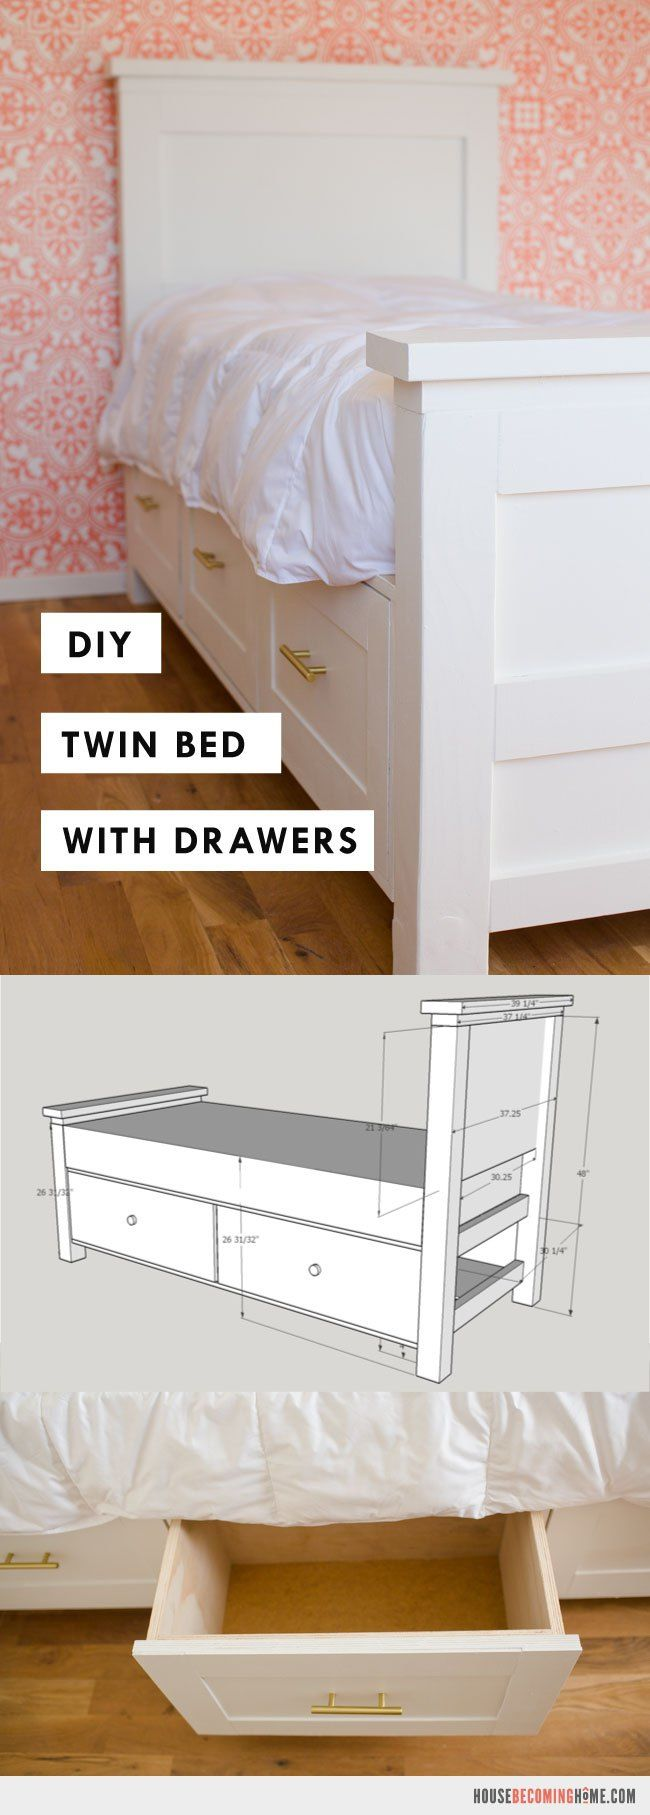 DIY Twin Bed with Storage Drawers images